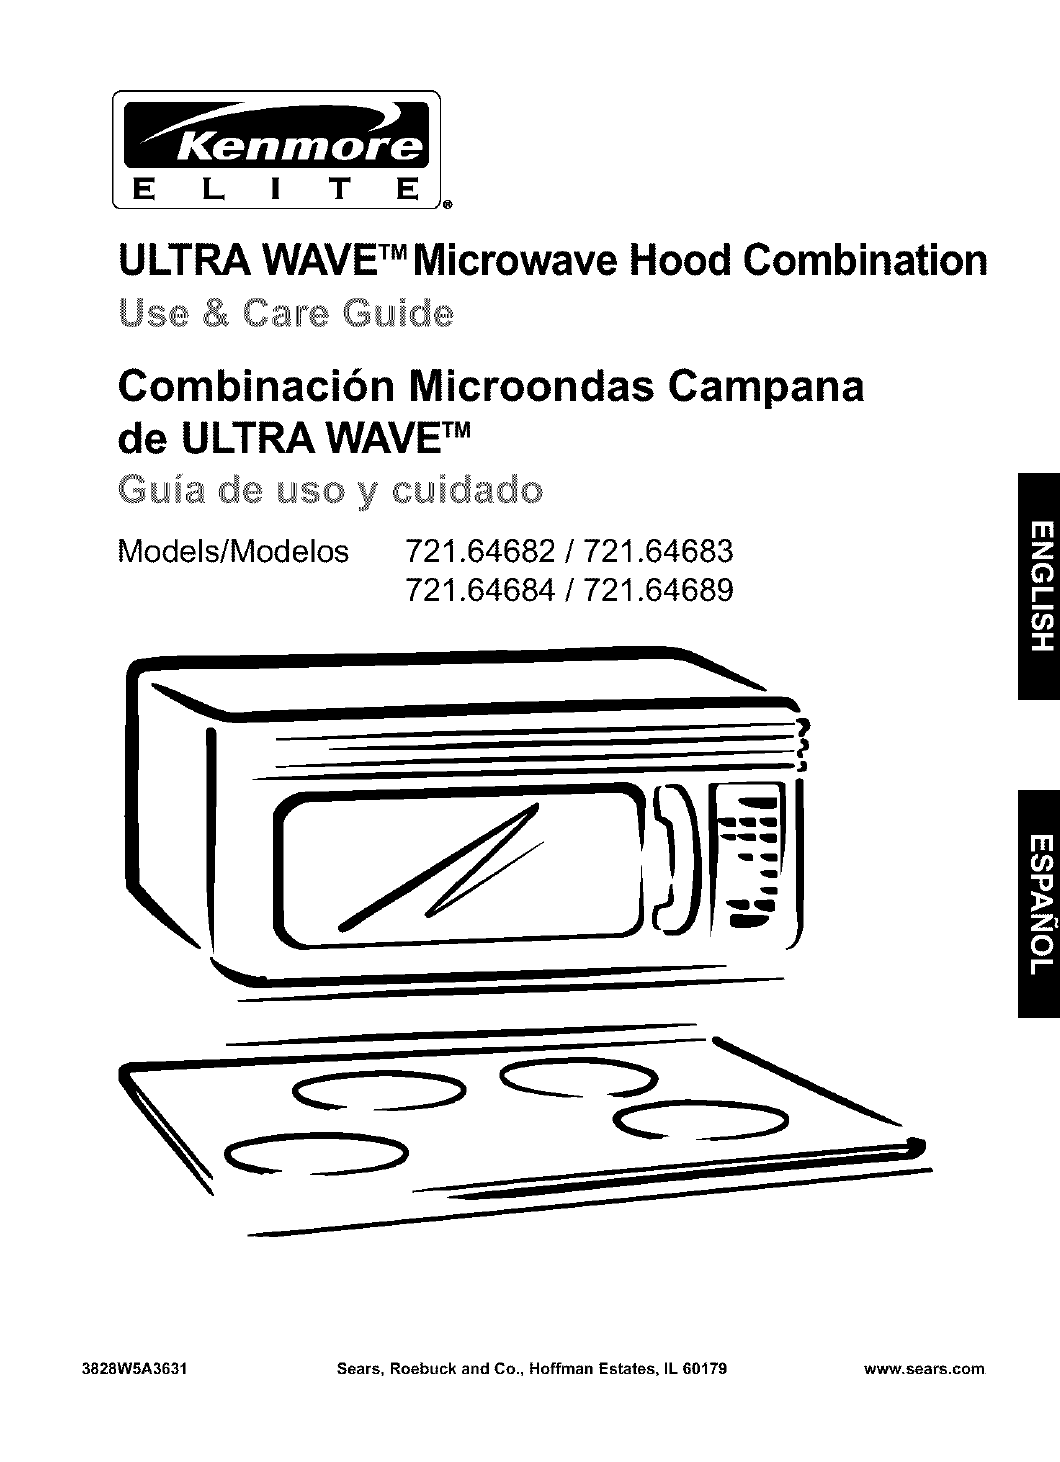 Kenmore Microwave Oven 721 64682 User